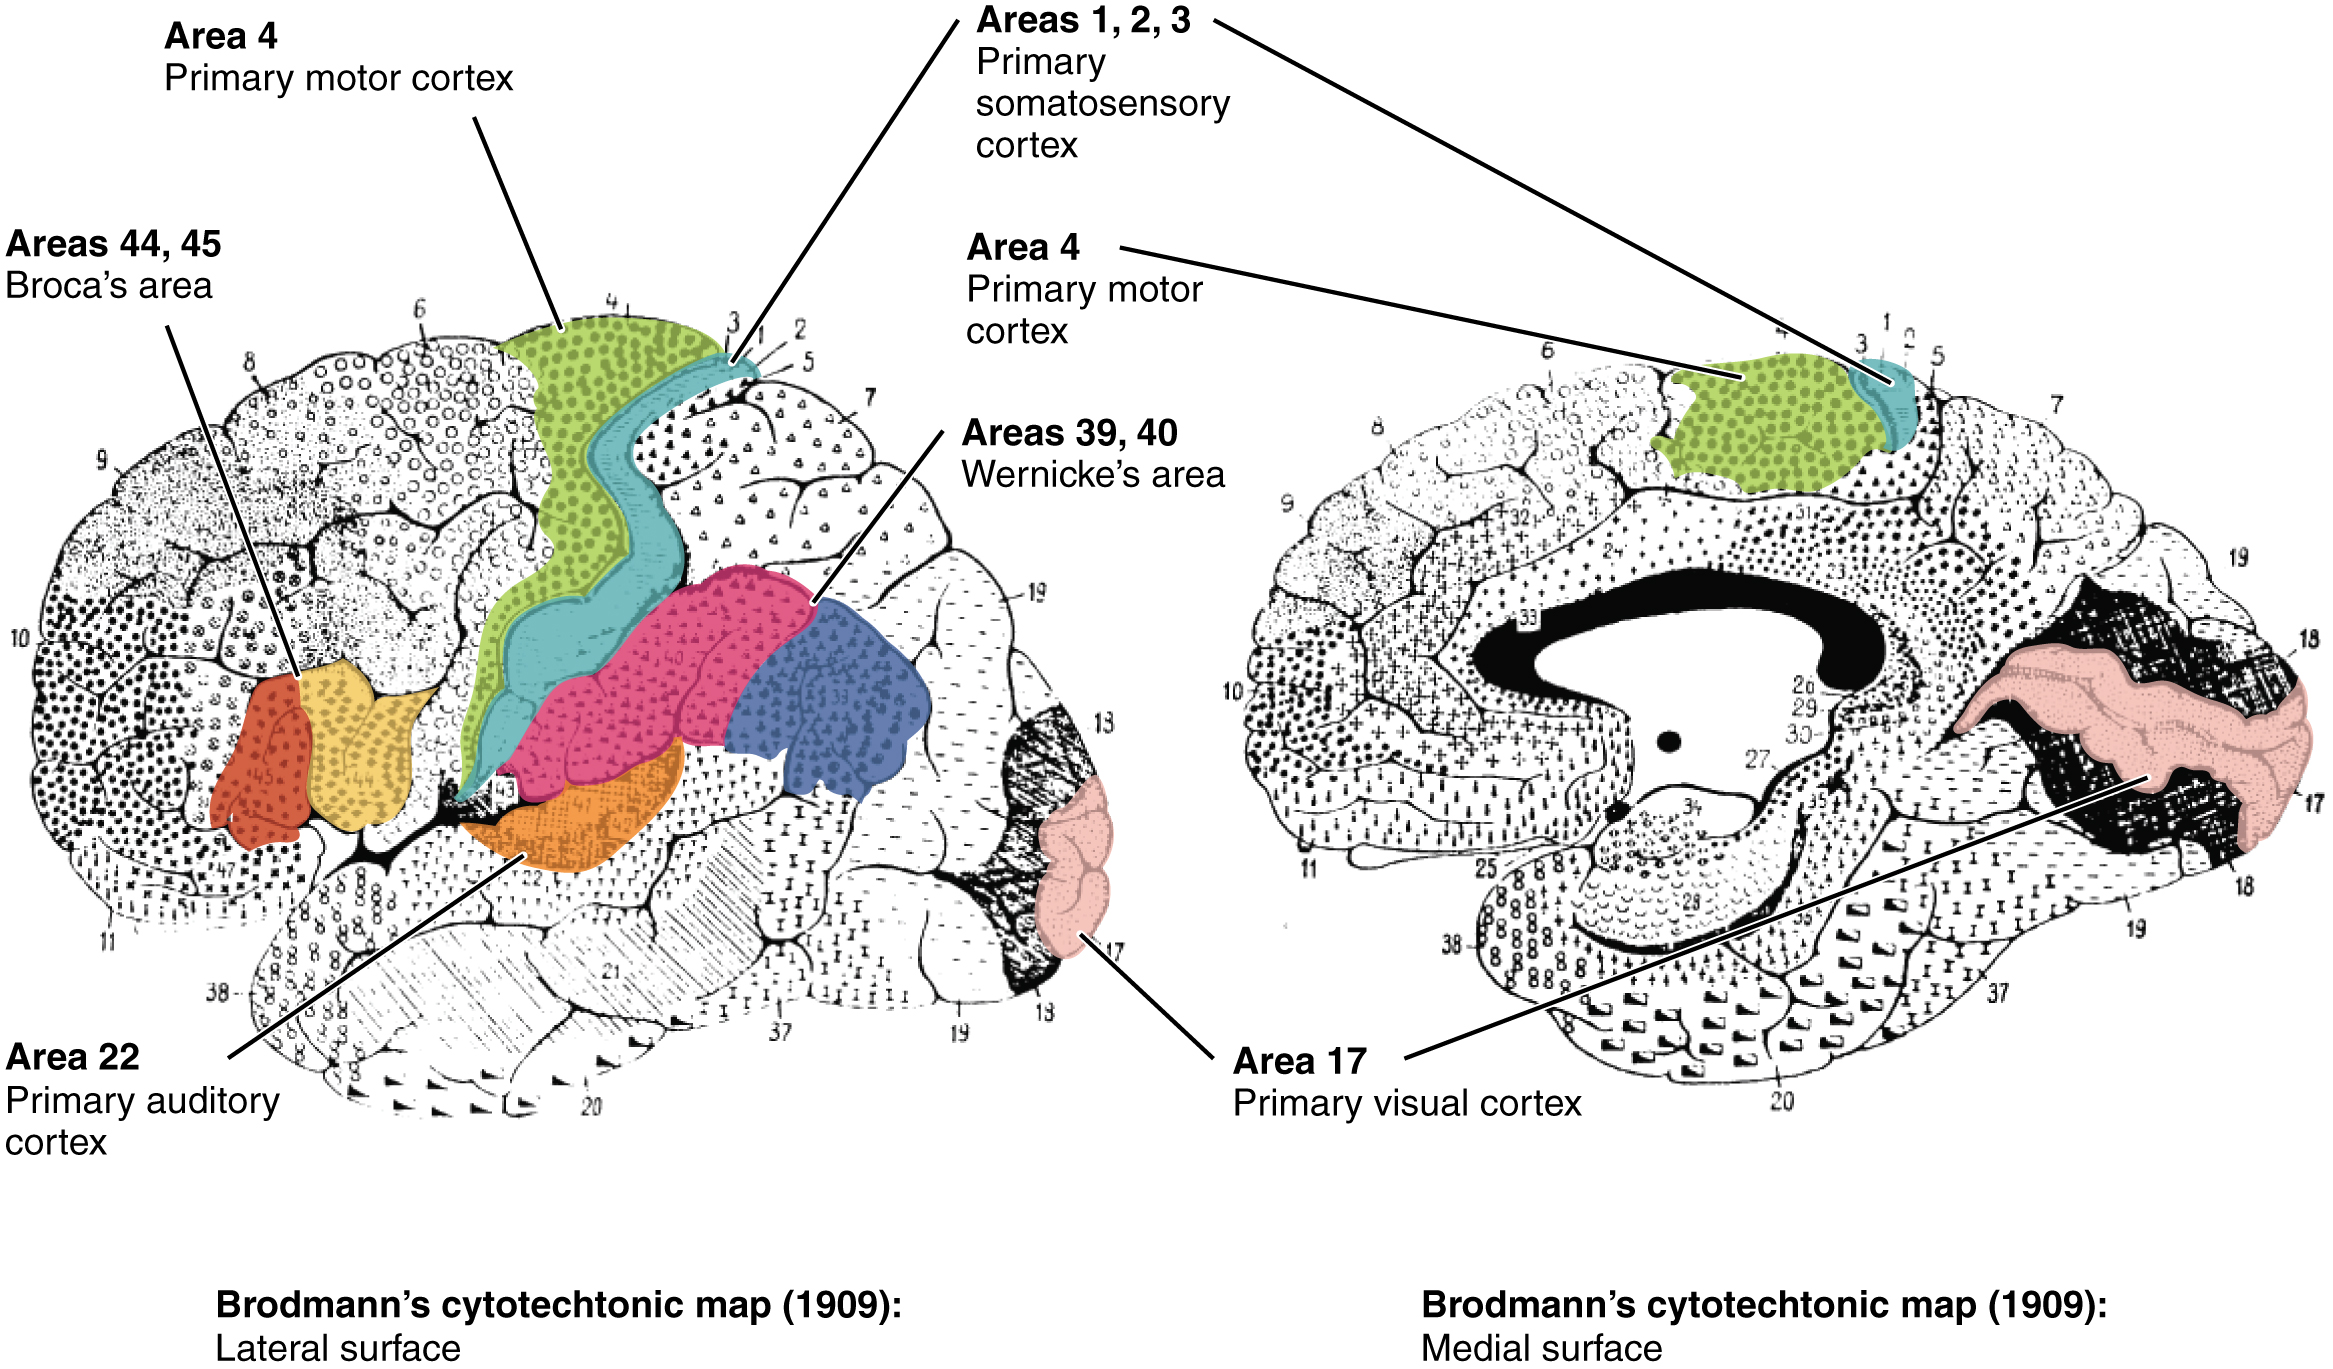 This figure shows a brain with the different regions highlighted in different colors. The left panel shows the lateral surface of the brain. The right panel shows the medial surface of the brain. The same color scheme is used to identify the different regions in both panels.